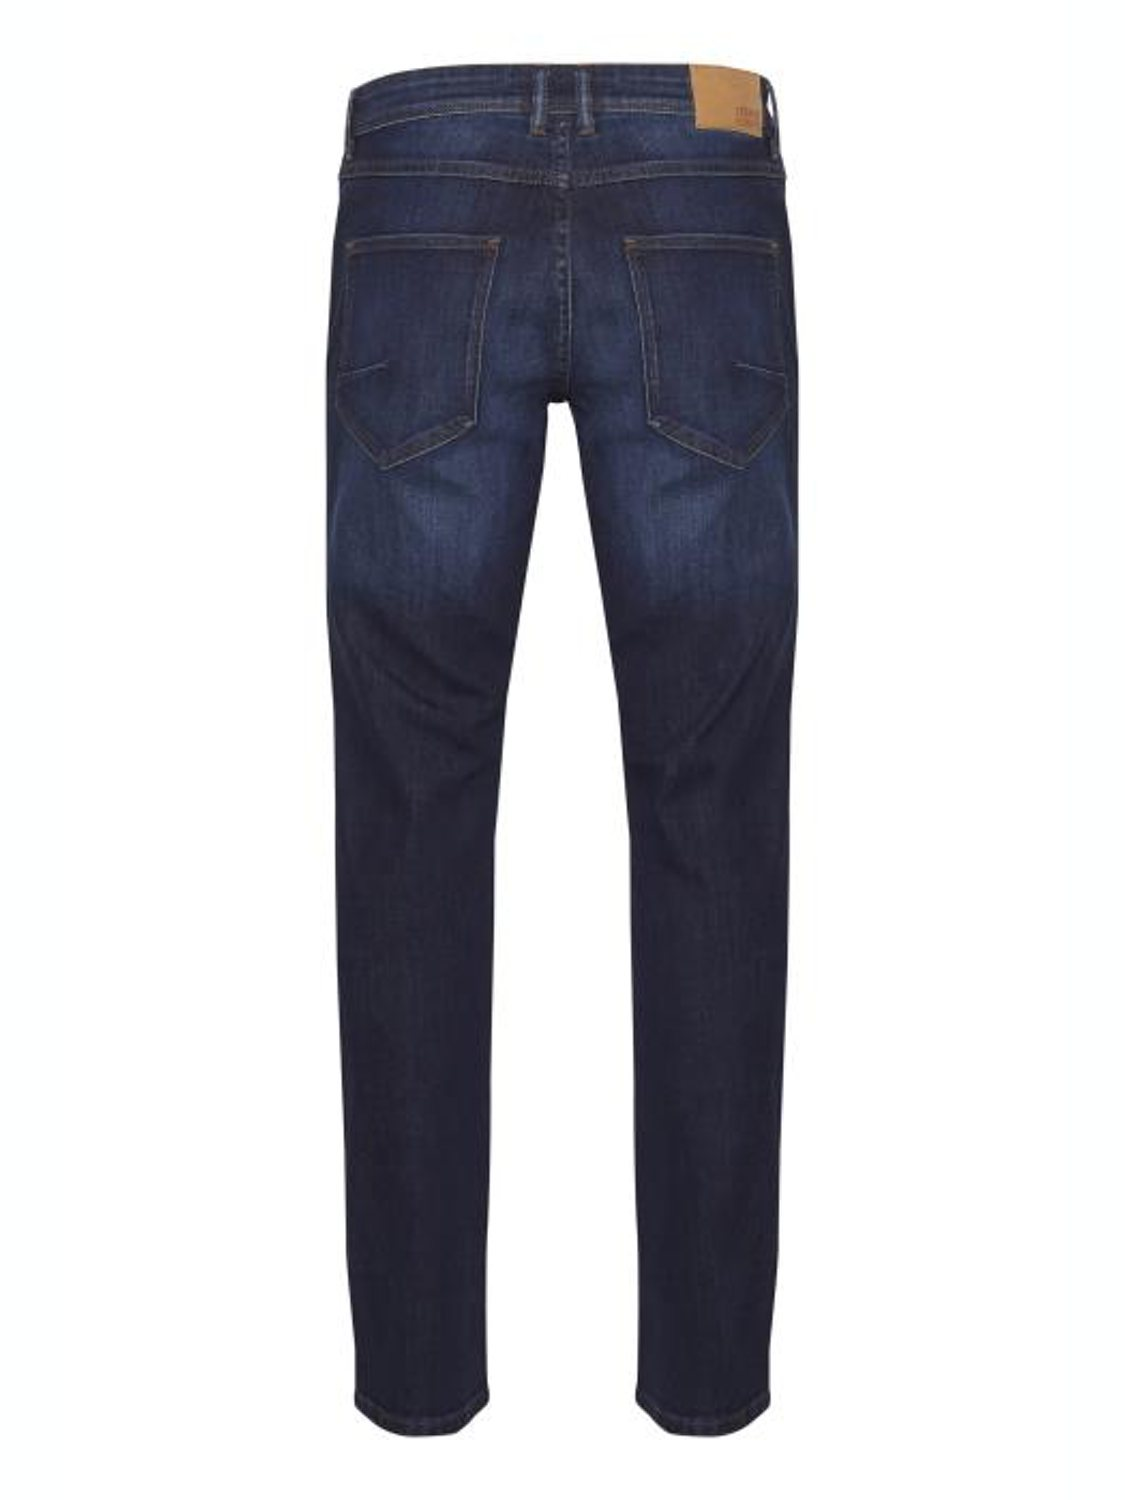 SOLID - JEANS MD BLUE | GATE 36 Hobro